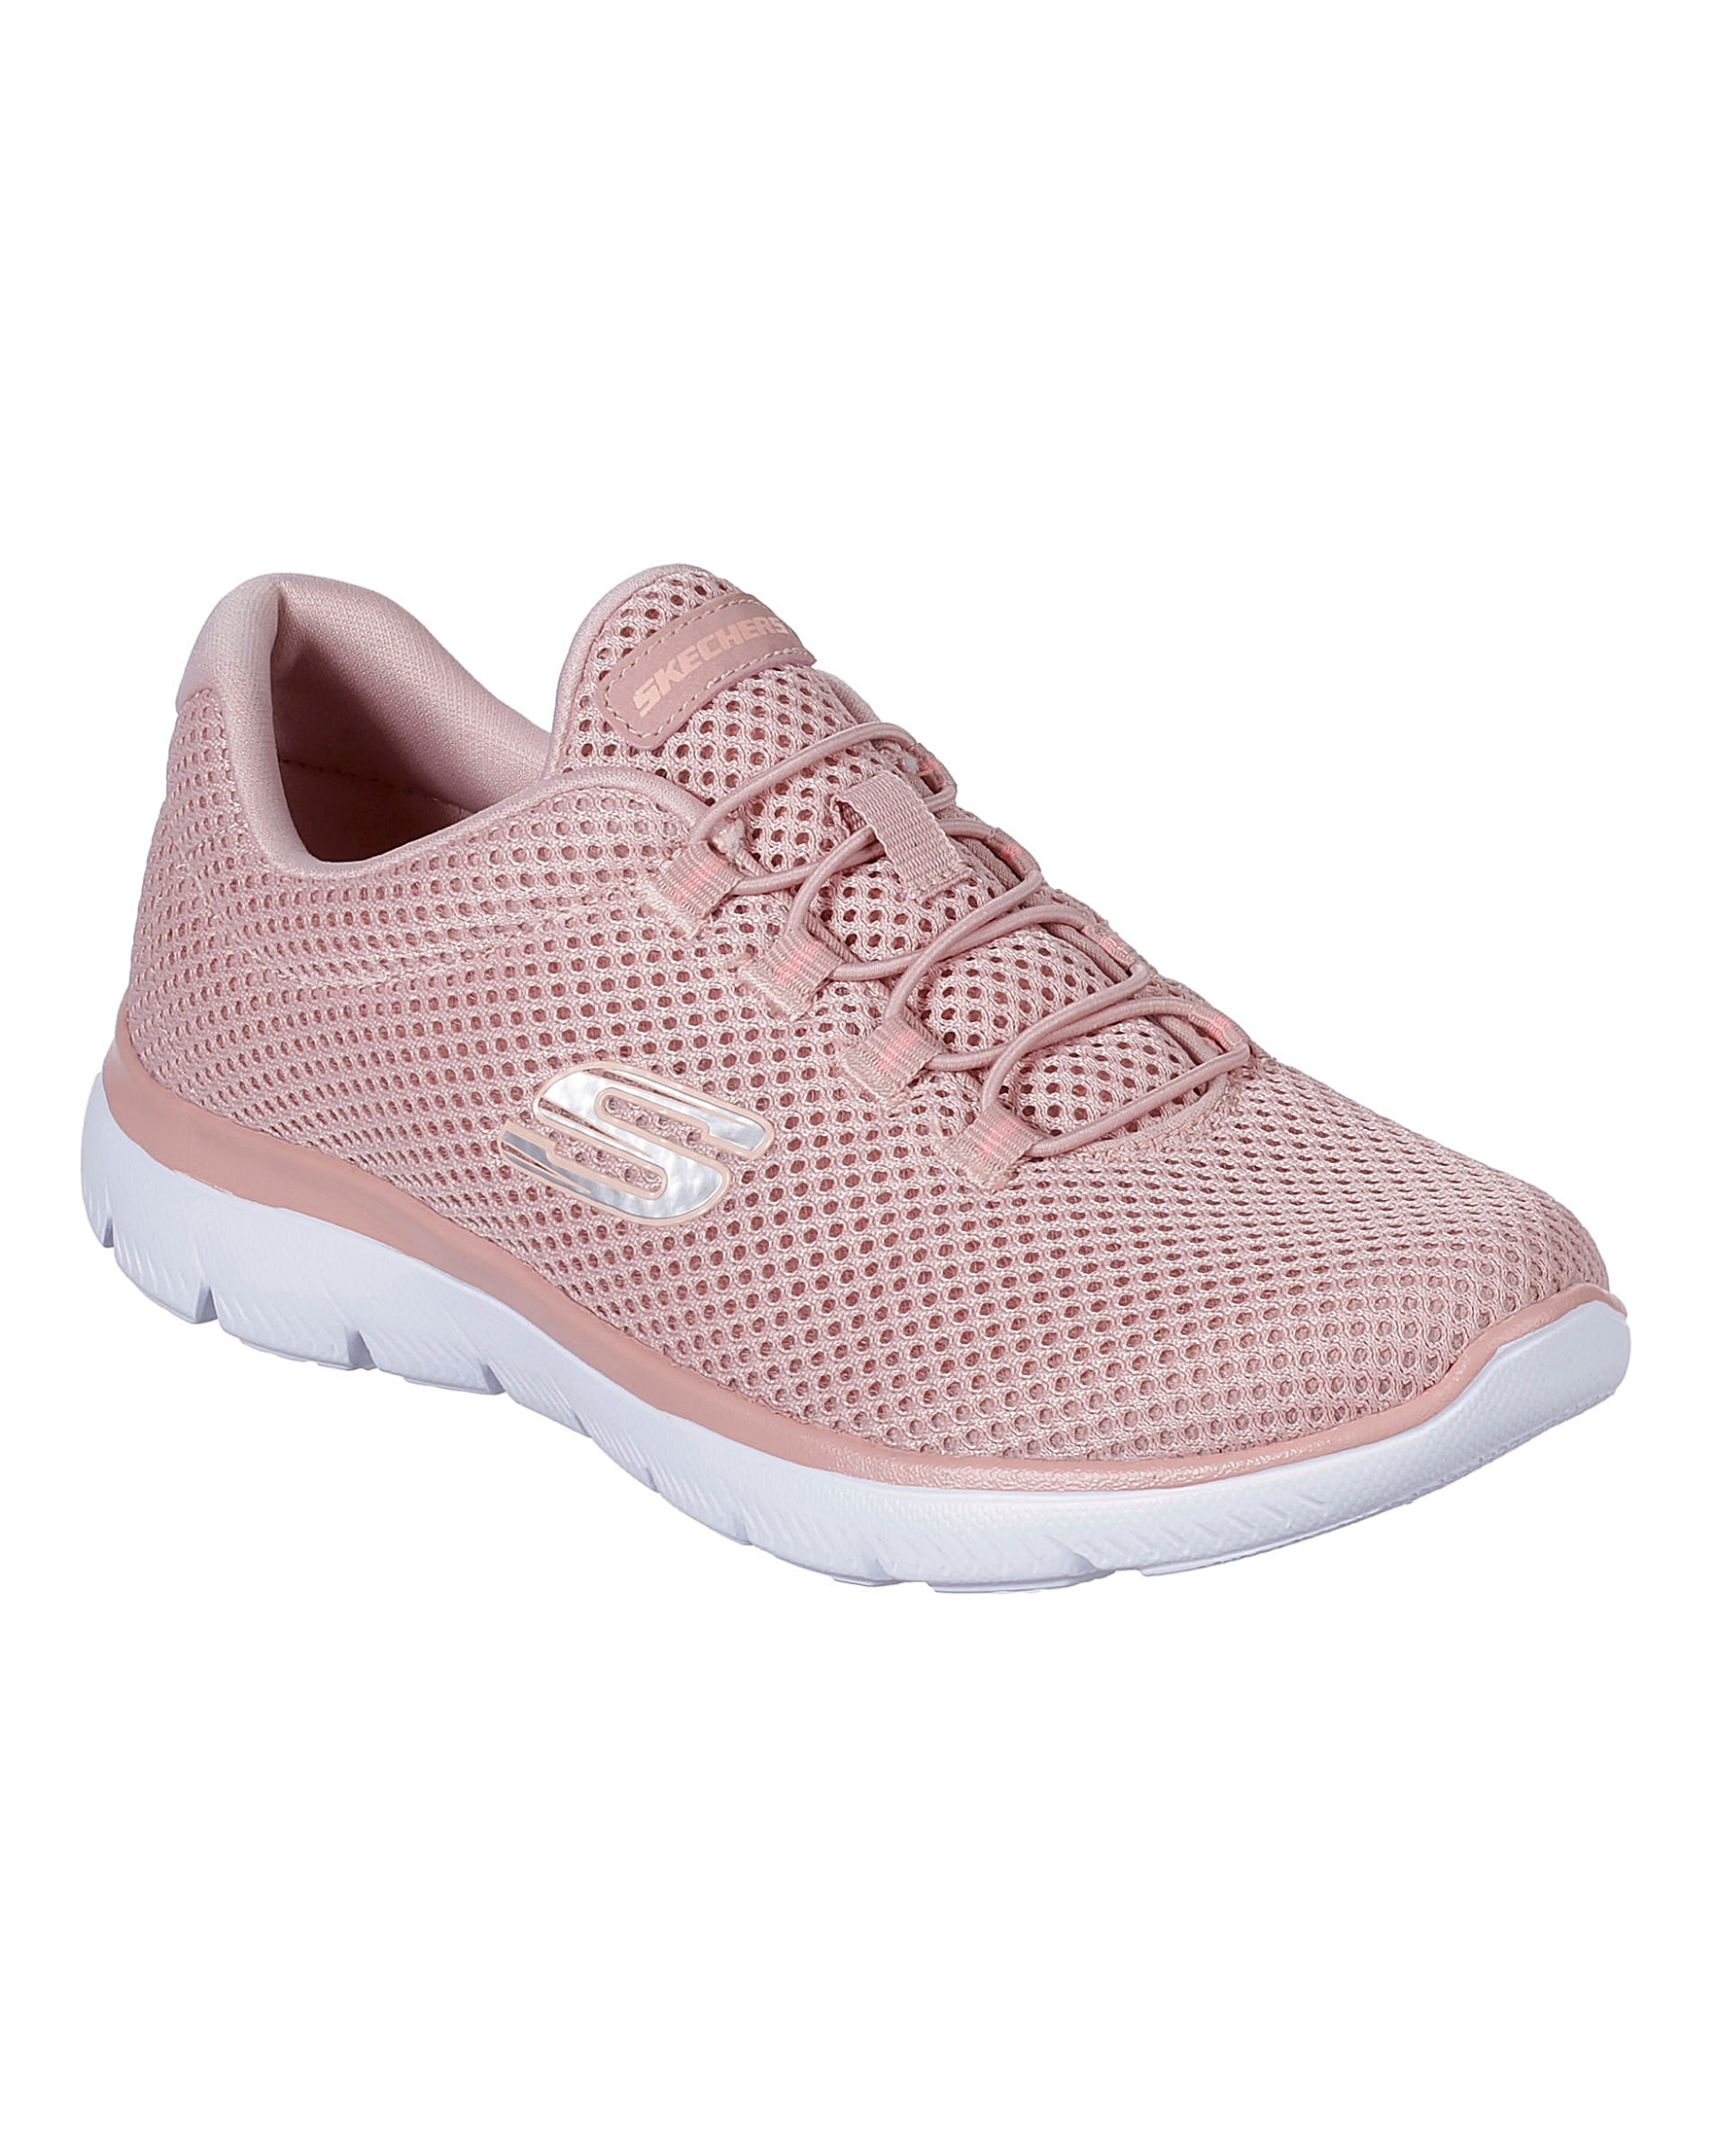 44993a7837 Skechers Summits Trainers | Simply Be